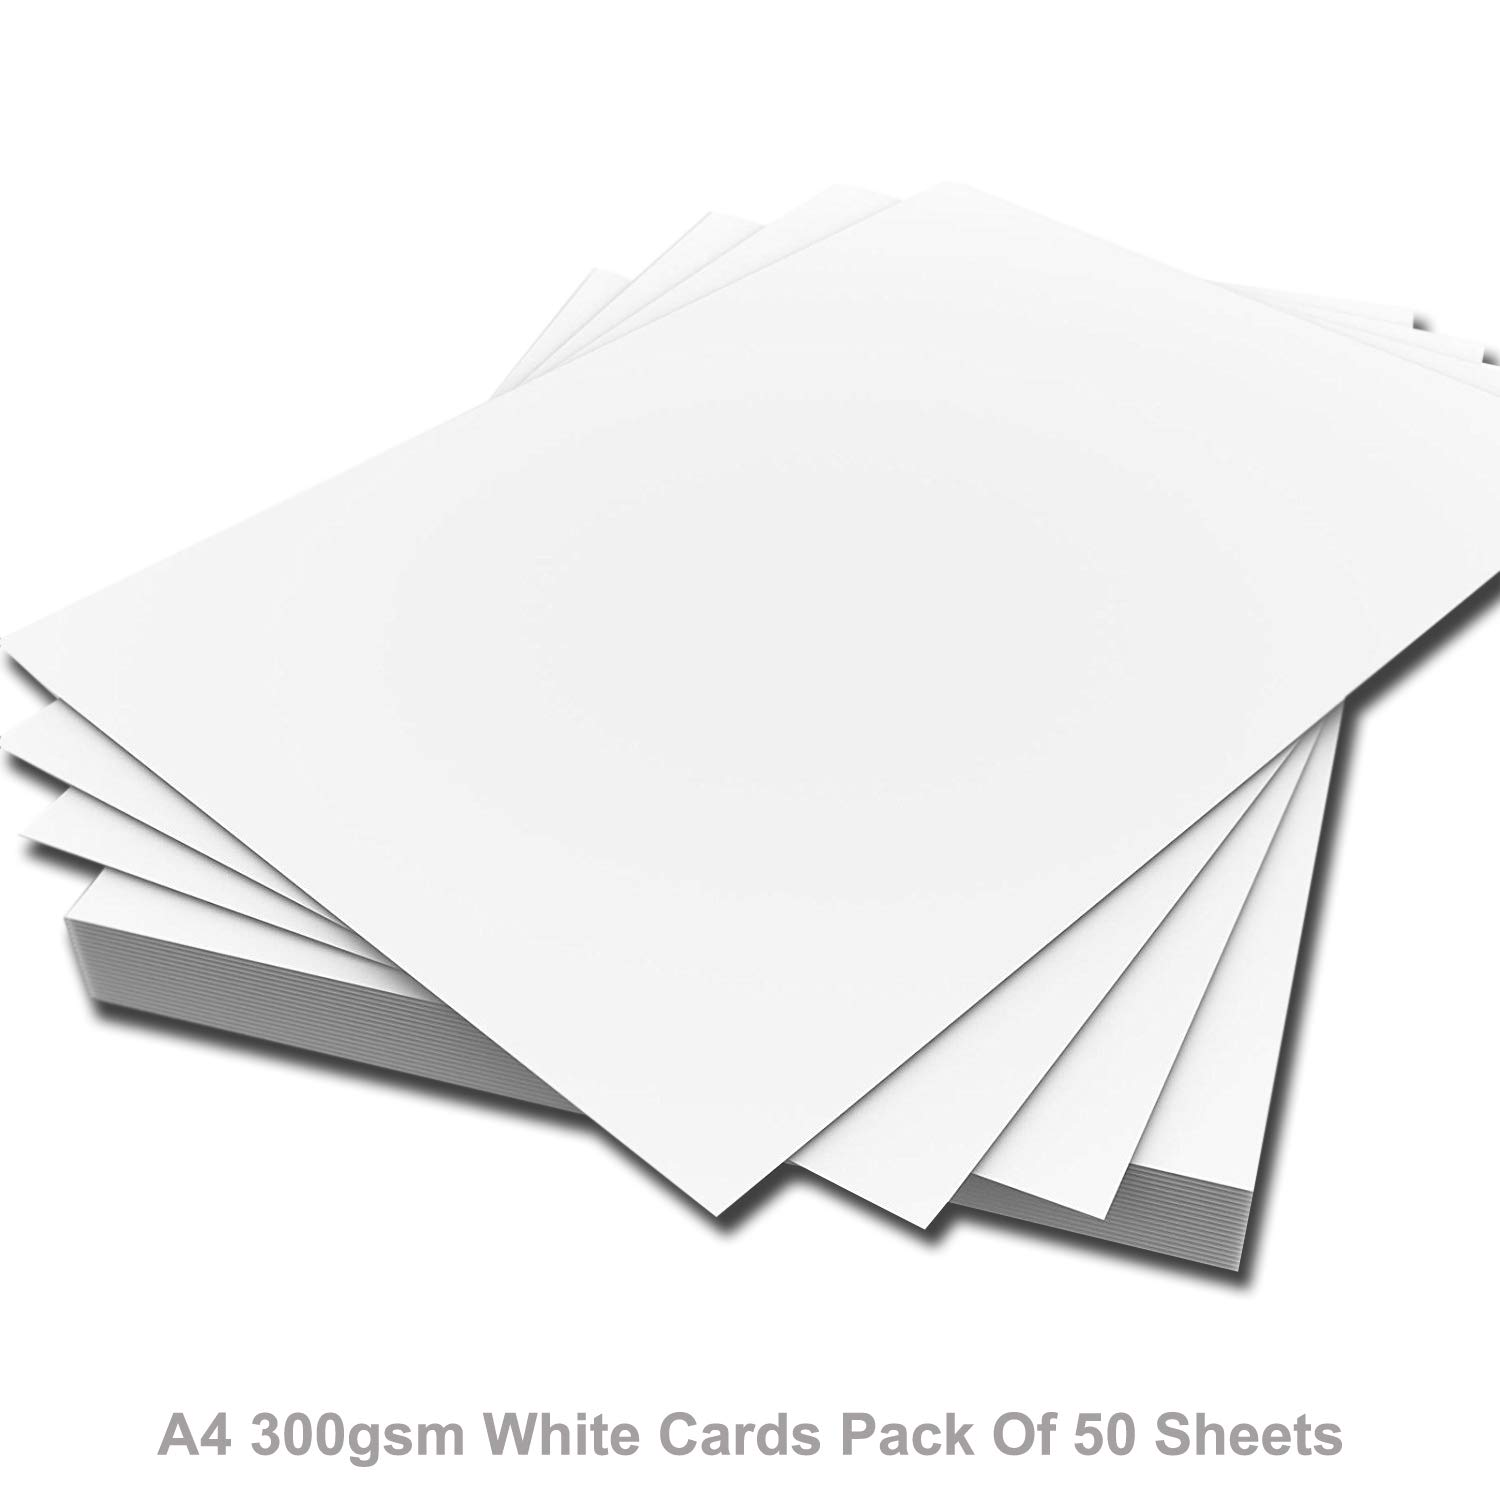 ARK A4 Premium Thick White Printer Craft Card 300gsm (Pack of 50 Sheets)